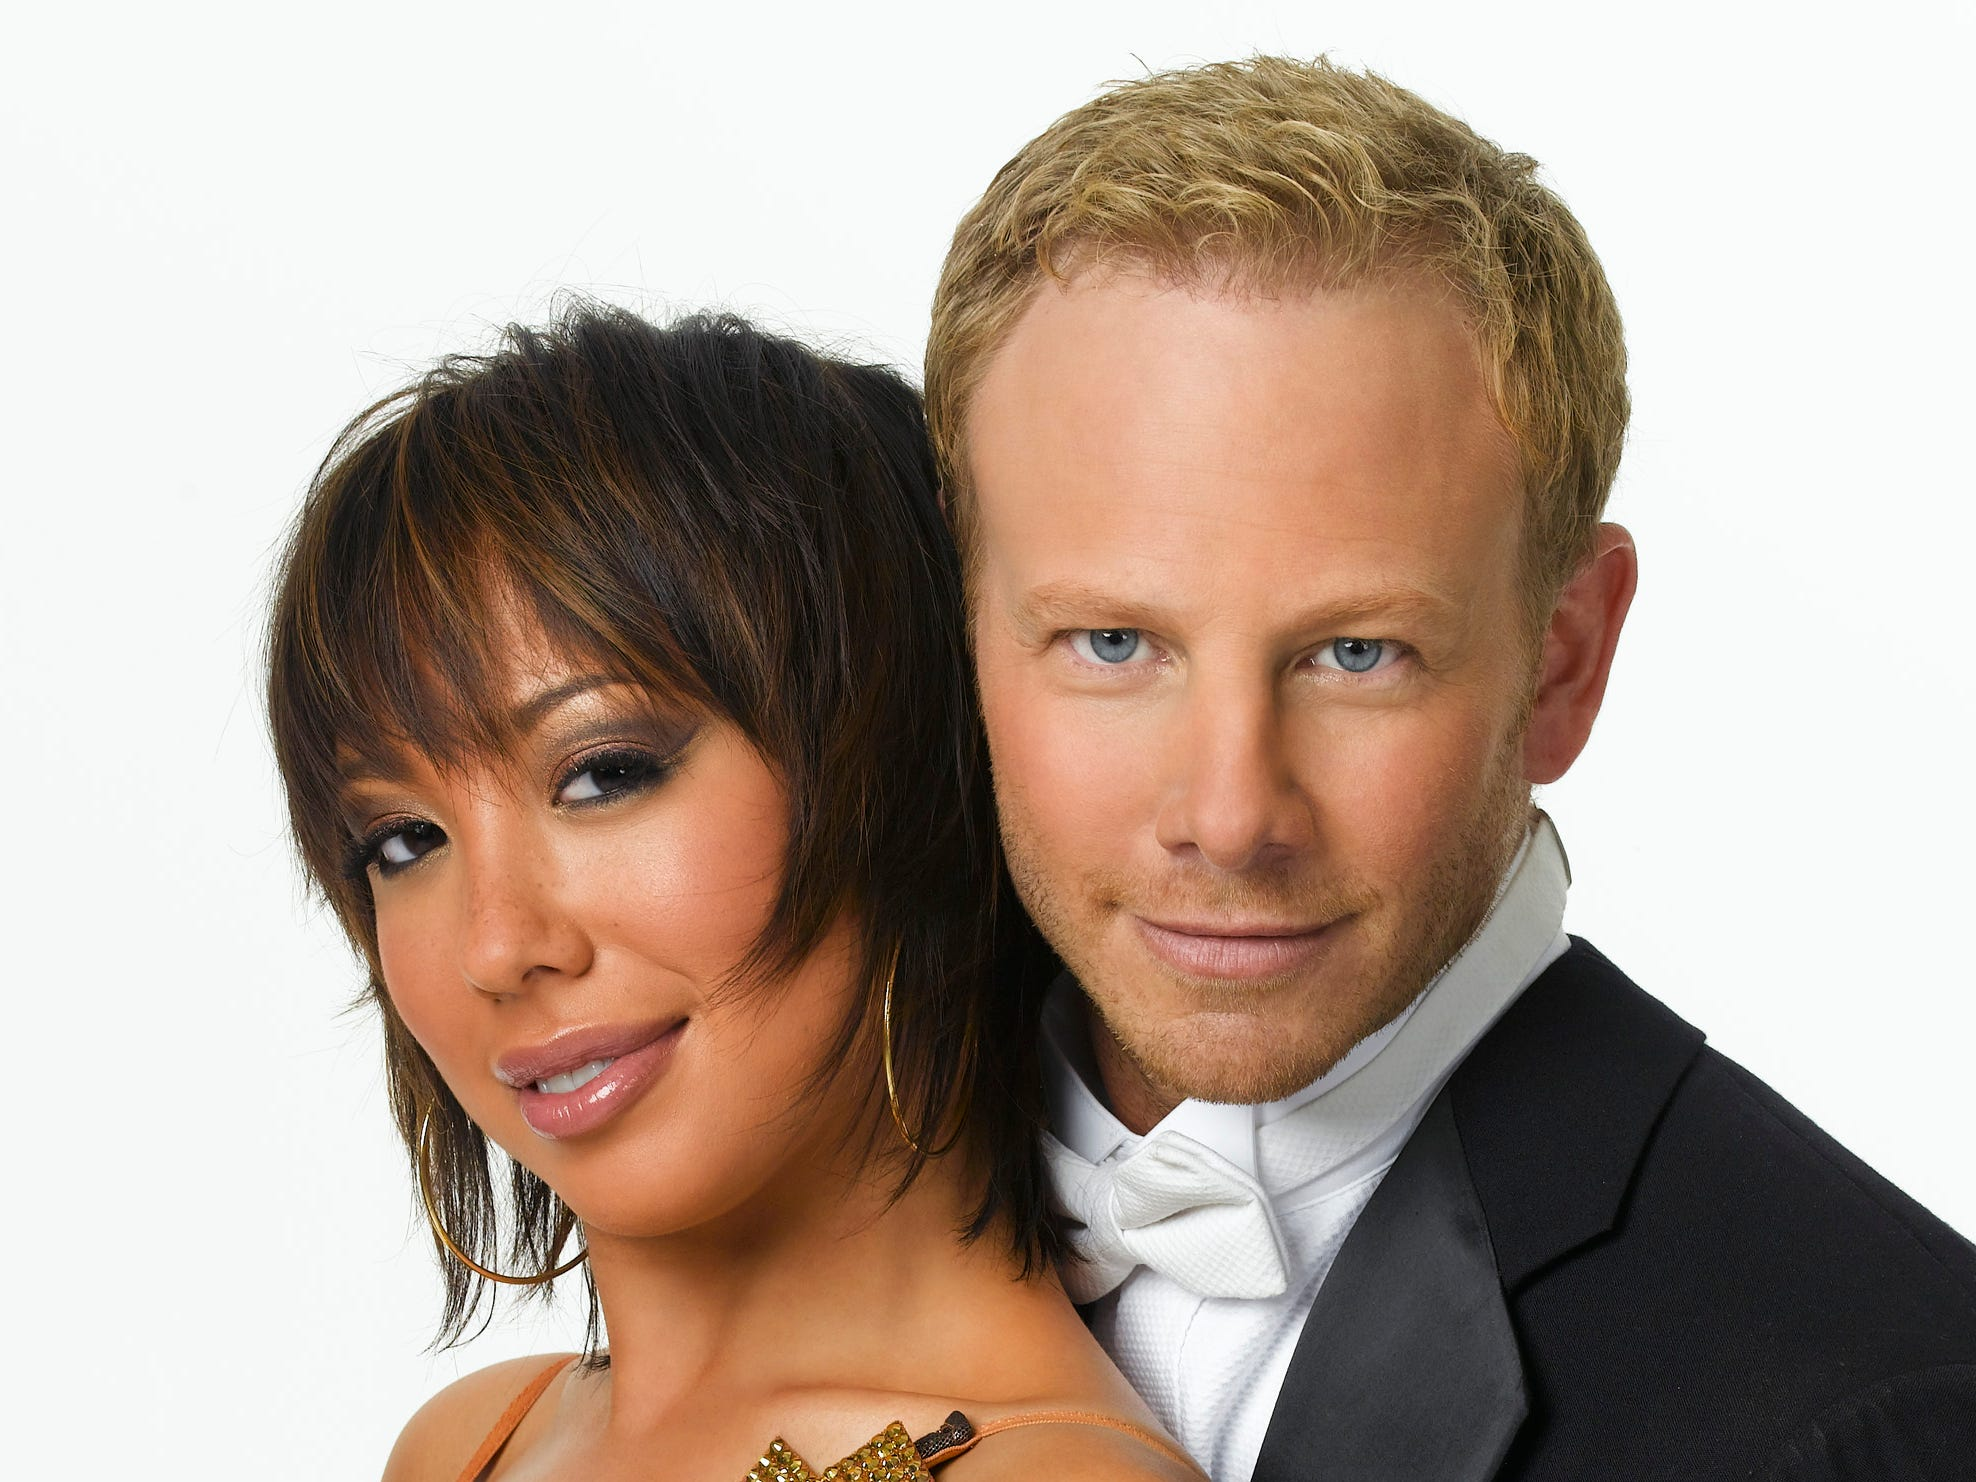 """DANCING WITH THE STARS - IAN ZIERING - One of the stars of the hit TV series """"Beverly Hills 90210,"""" actor Ian Ziering also played a supporting role in the movie """"Domino,"""" and wrote, produced, directed and starred in the short film """"Man vs. Monday."""" He teams with two-time defending champion CHERYL BURKE, who returns for her third season. """"Dancing with the Stars"""" returns MONDAY, MARCH 19 (8:00-10:00 p.m., ET) on ABC. (ABC/JAMES SORENSEN) (Via MerlinFTP Drop)"""